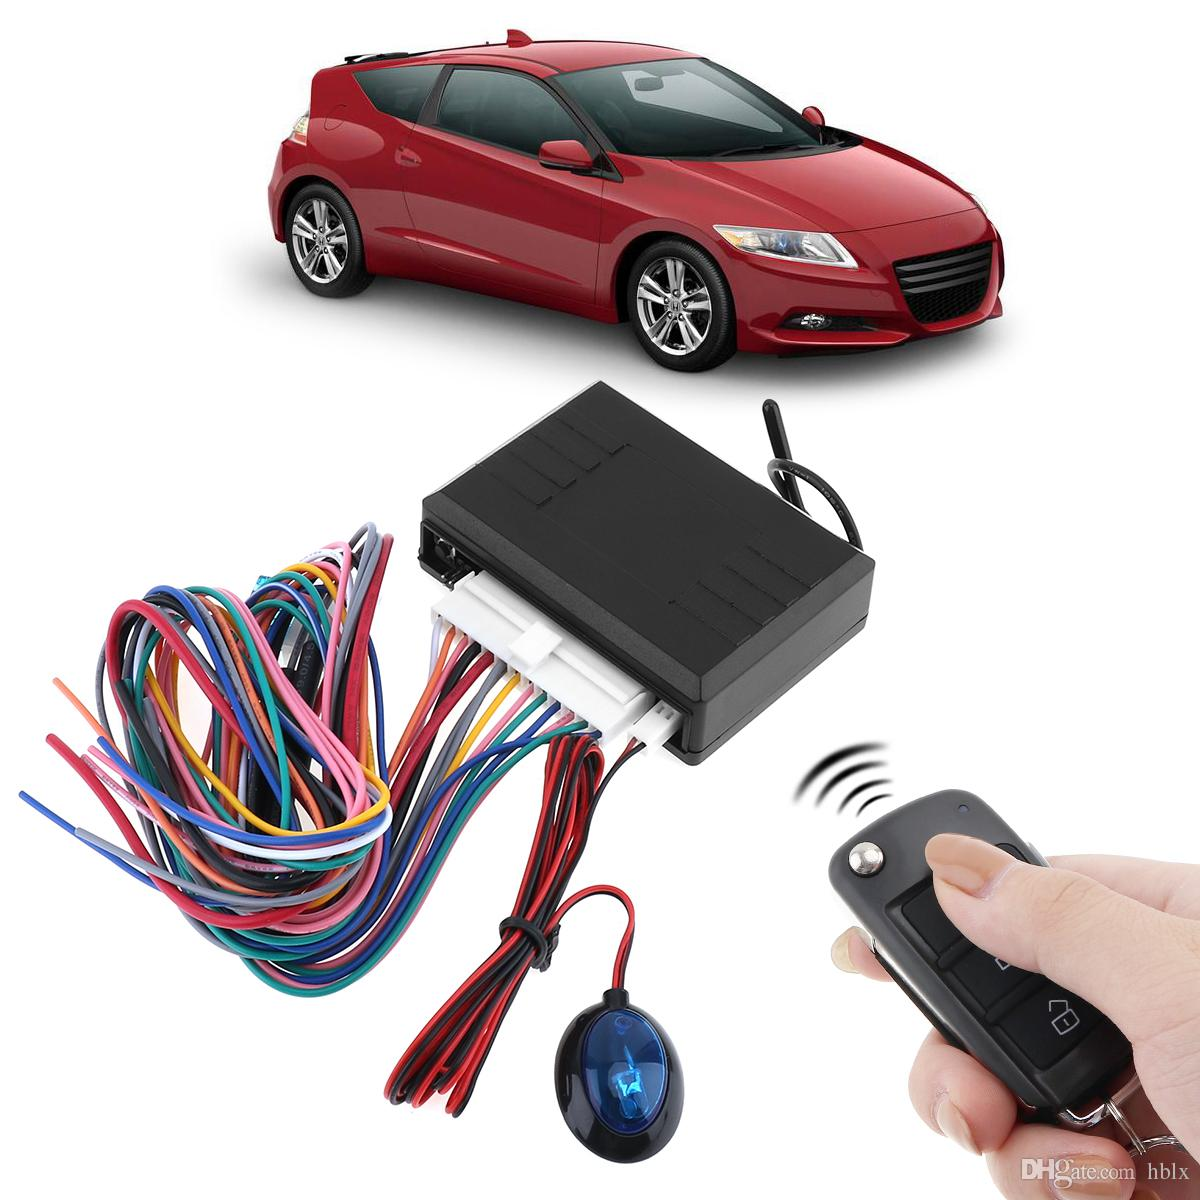 12V Car Alarm System Vehicle Keyless Entry System with Remote Control & Door Lock Automatically for Hyundai CAL_10A